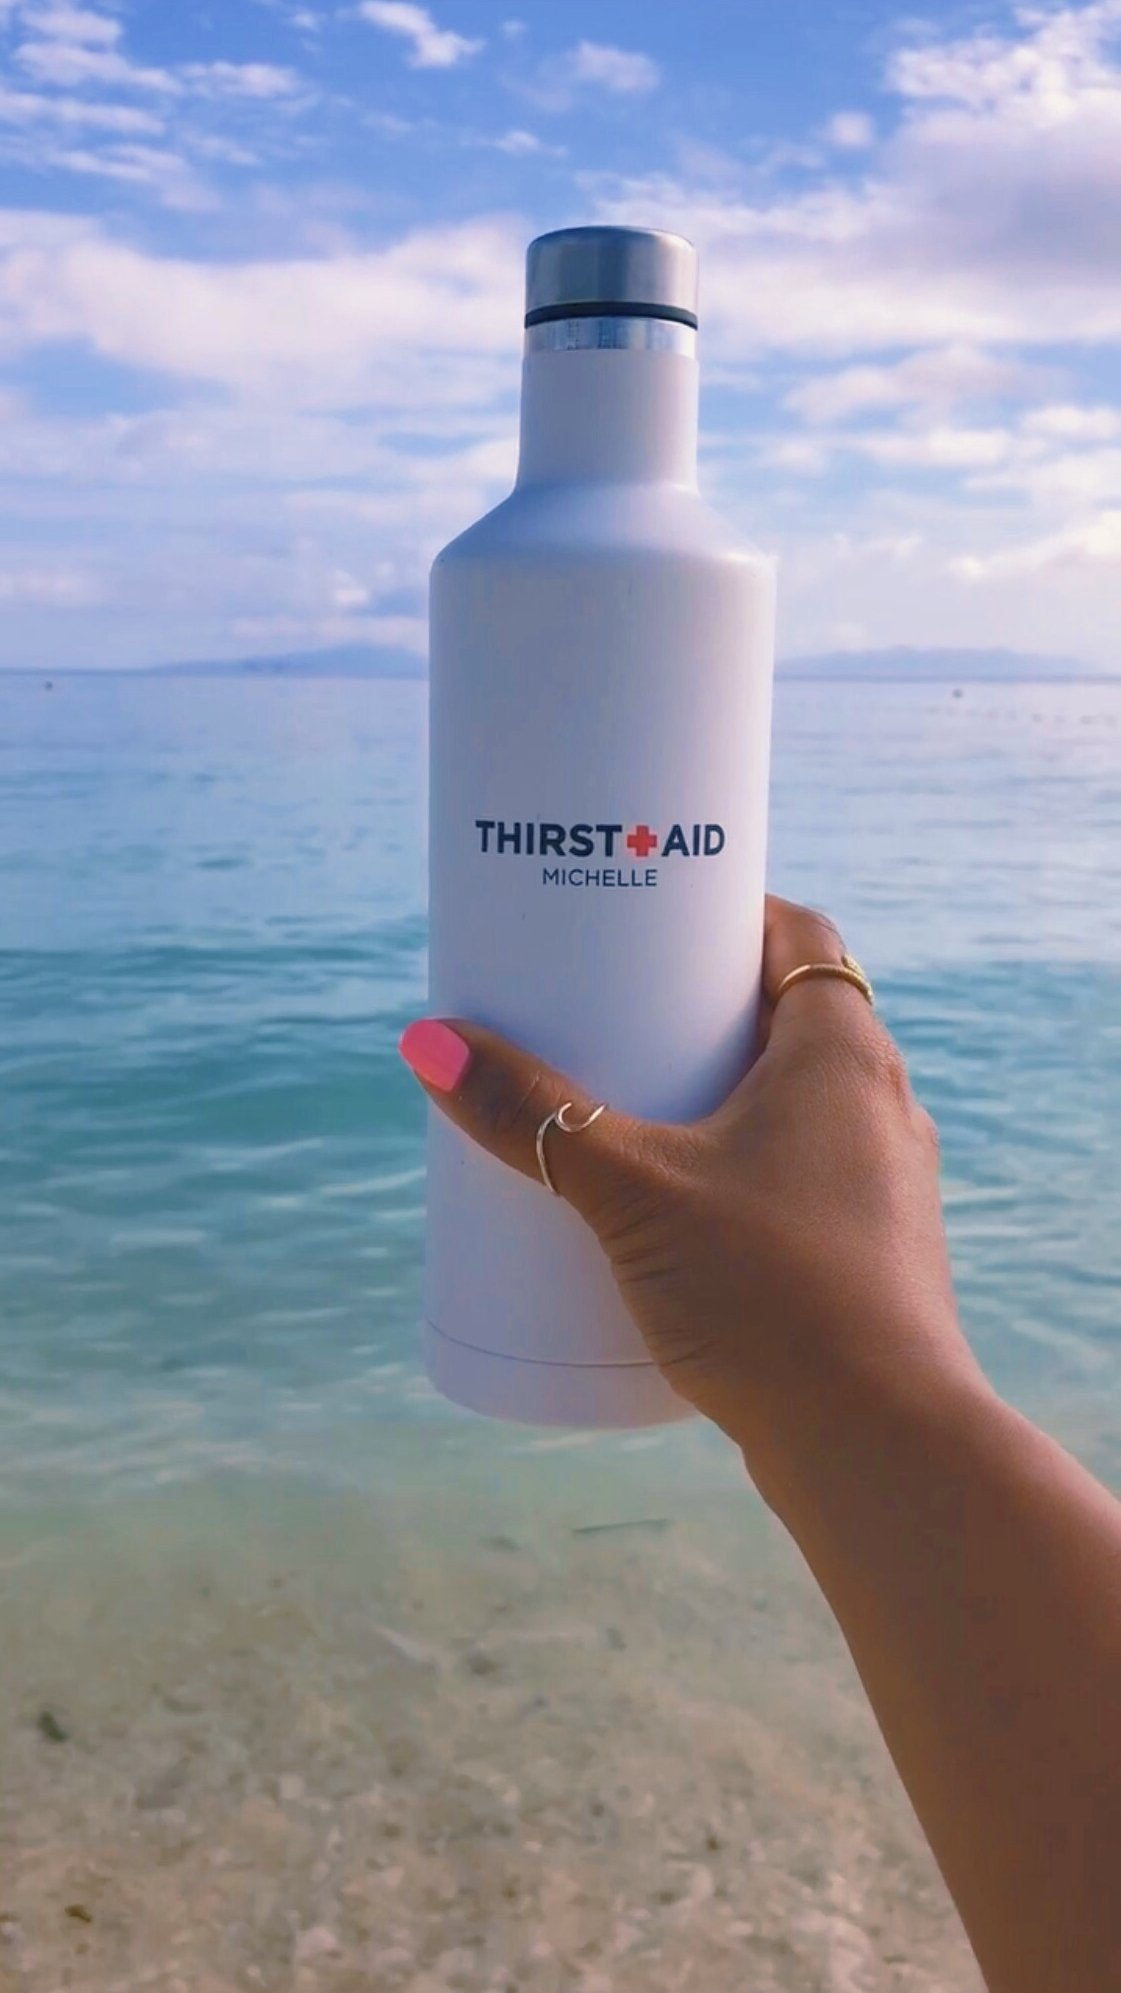 Thirst Aid Stainless Steel Water Bottle - Personalized - Pretty Collected